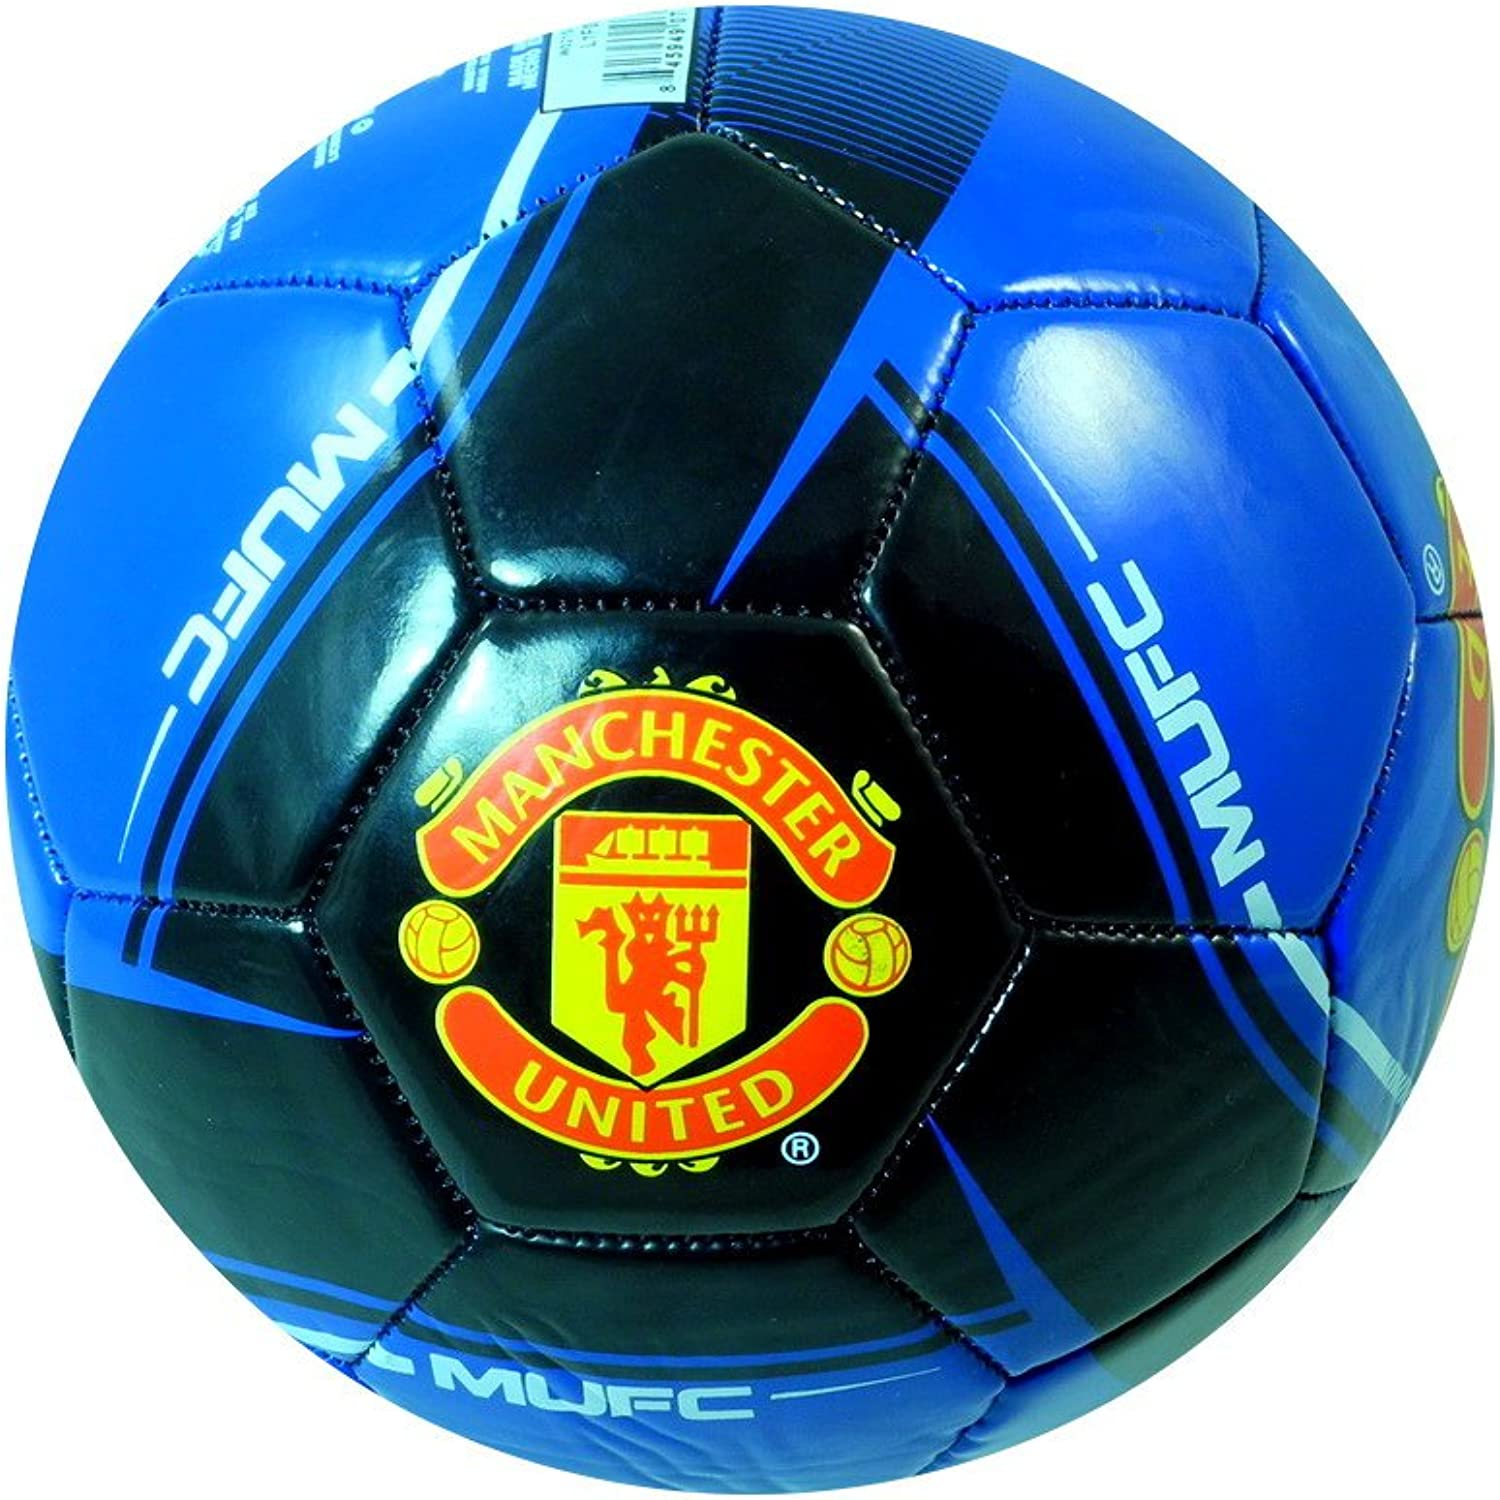 Manchester United FC Authentic Official Licensed Soccer Ball Size 5 012